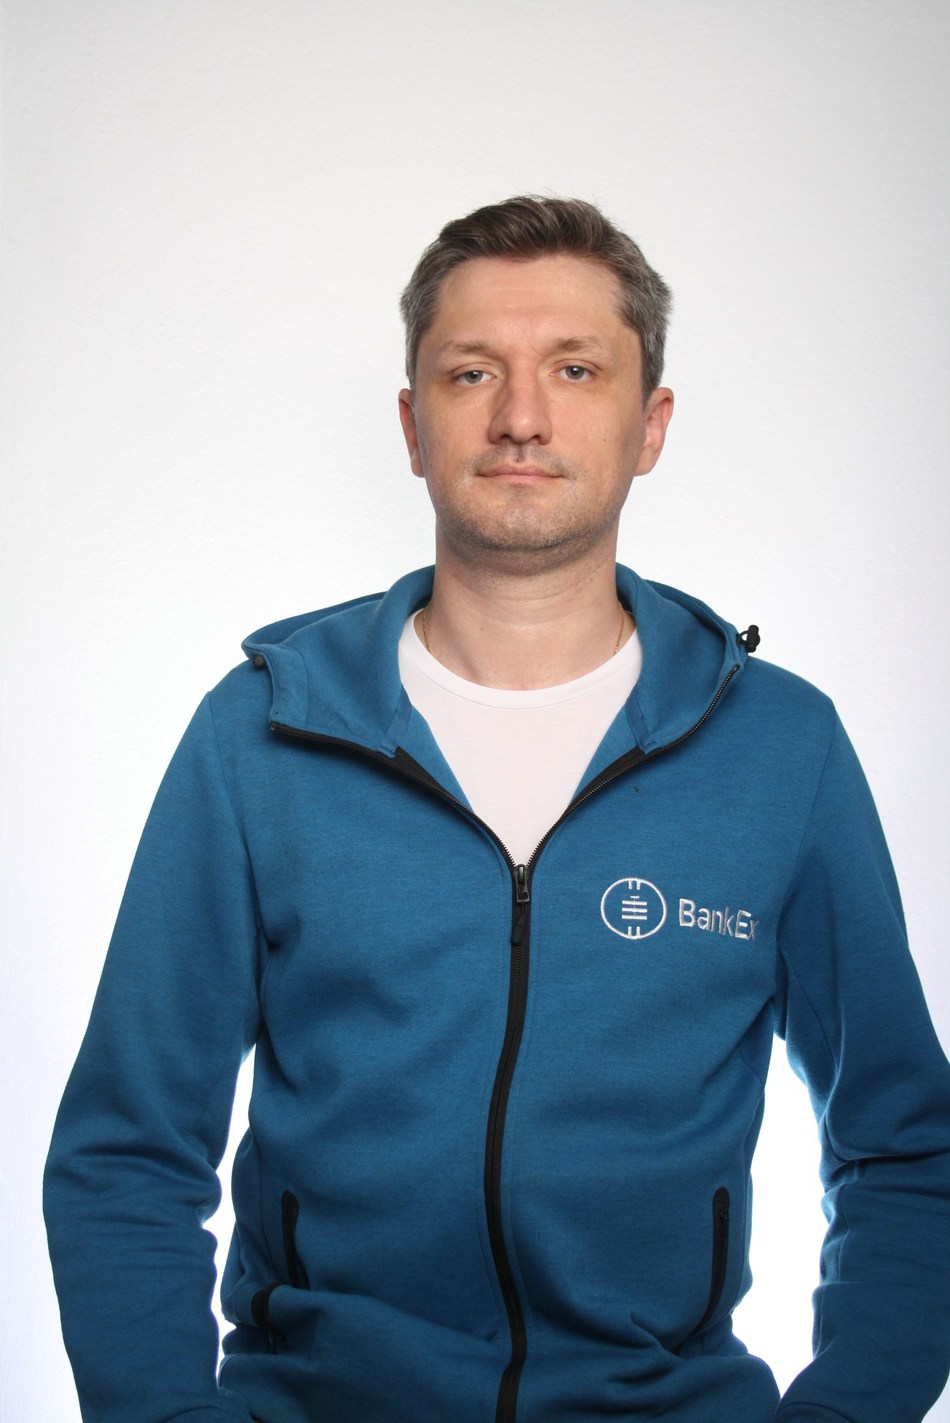 Igor Khmel, Bankex Group, Founder and CEO.